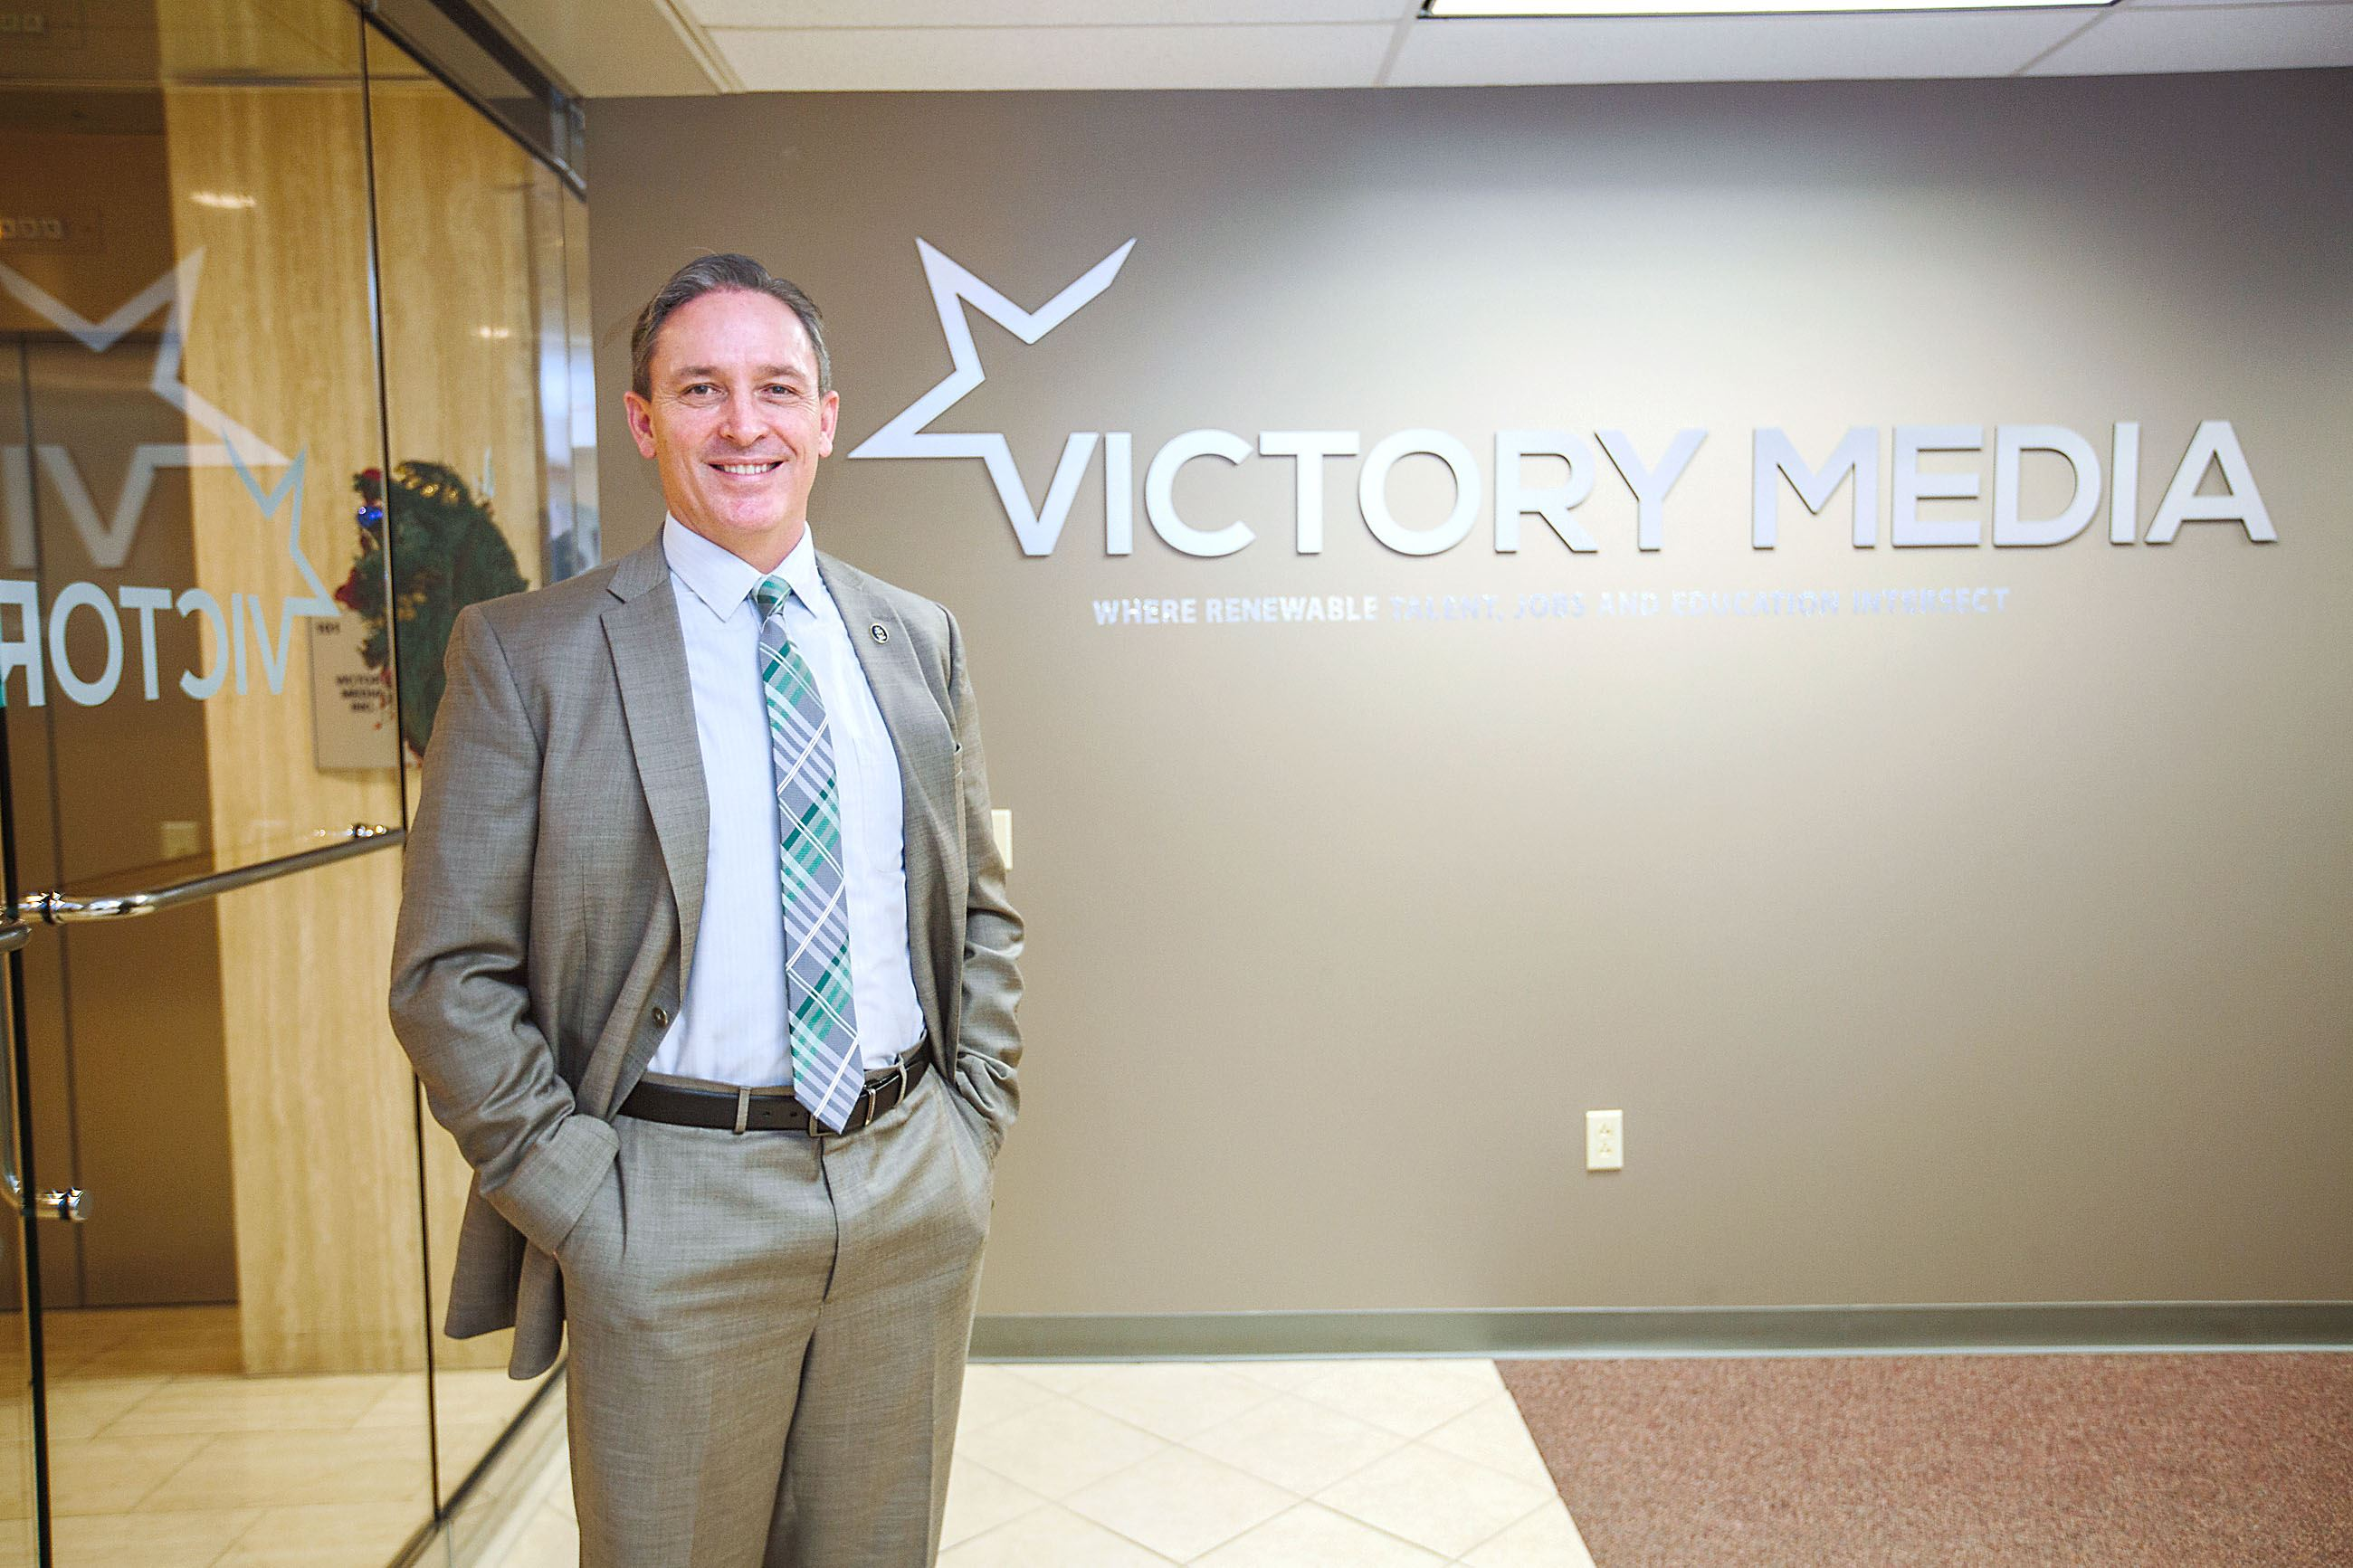 Victory Media taps veteran talent for Military Friendly opportunities.